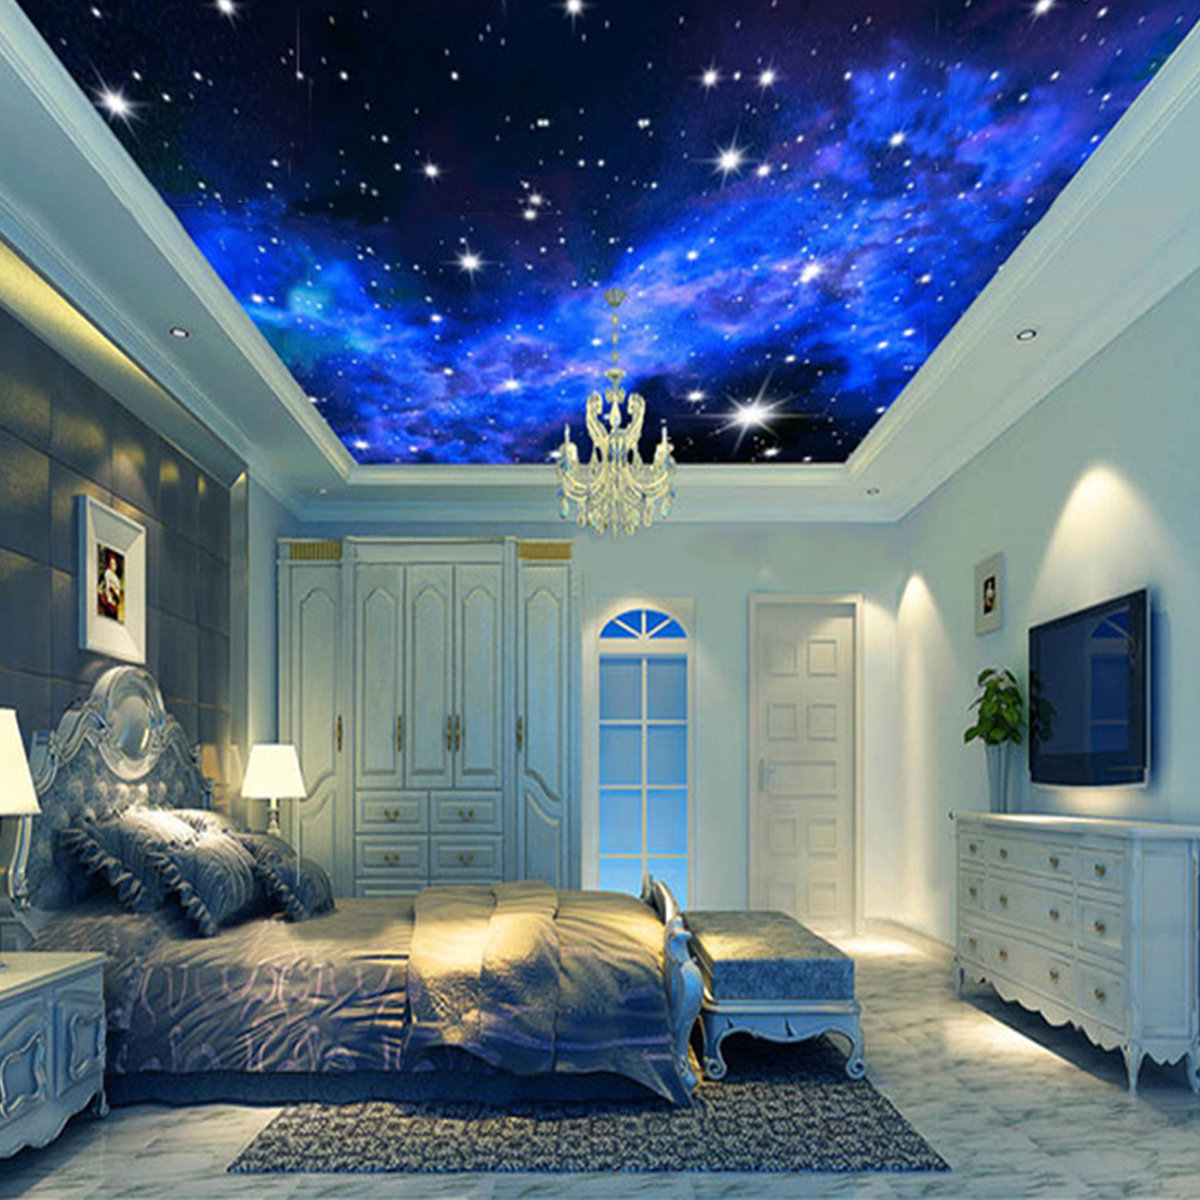 3d Wallpaper Mural Night Clouds Star Sky Wall Paper Background Interior Ceiling Home Decor Is